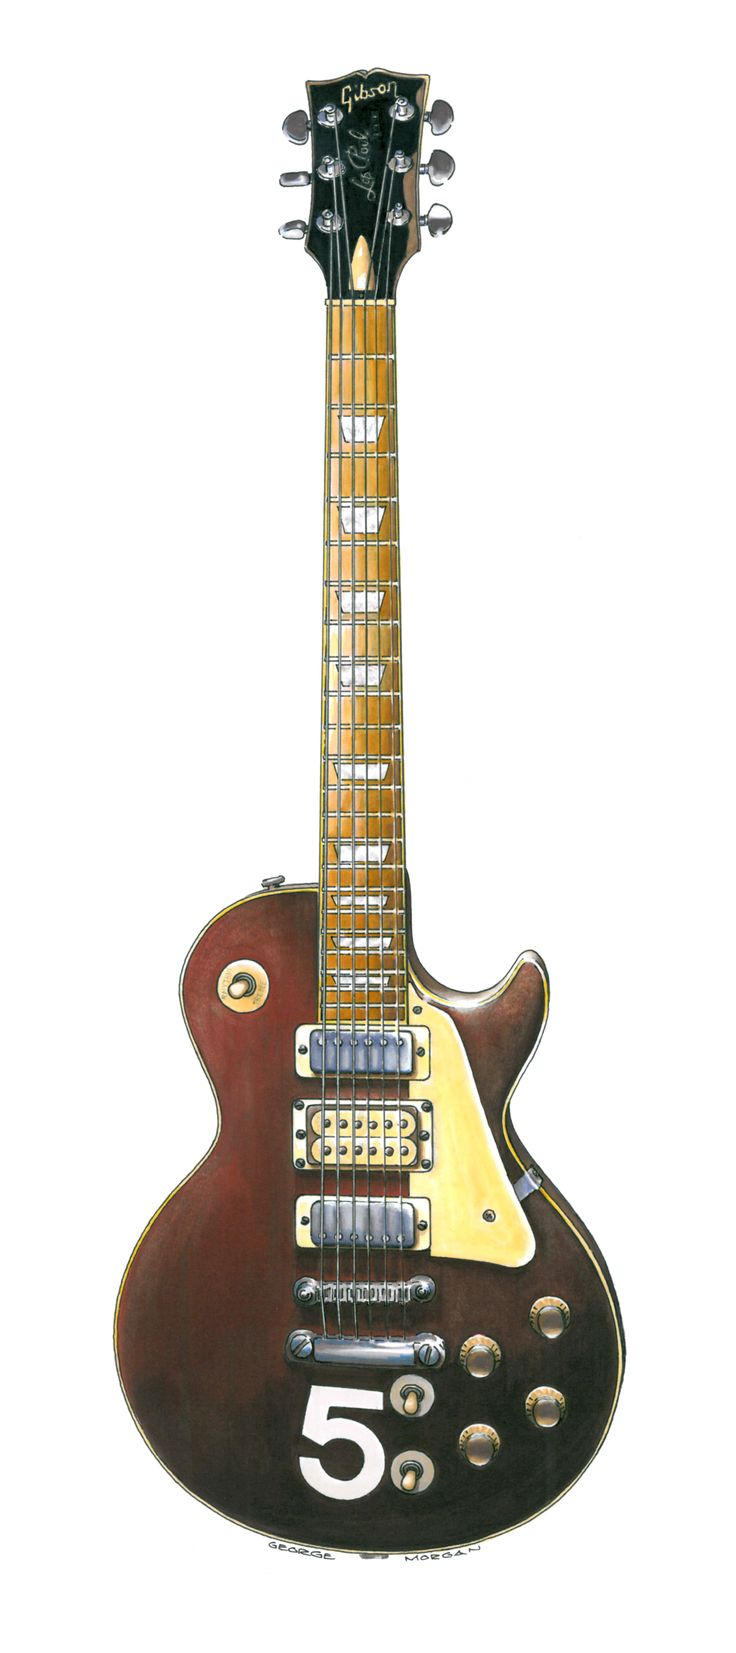 gibson les paul deluxe 5 this is pete townshend 39 s wine red 5 gibson les paul deluxe. Black Bedroom Furniture Sets. Home Design Ideas